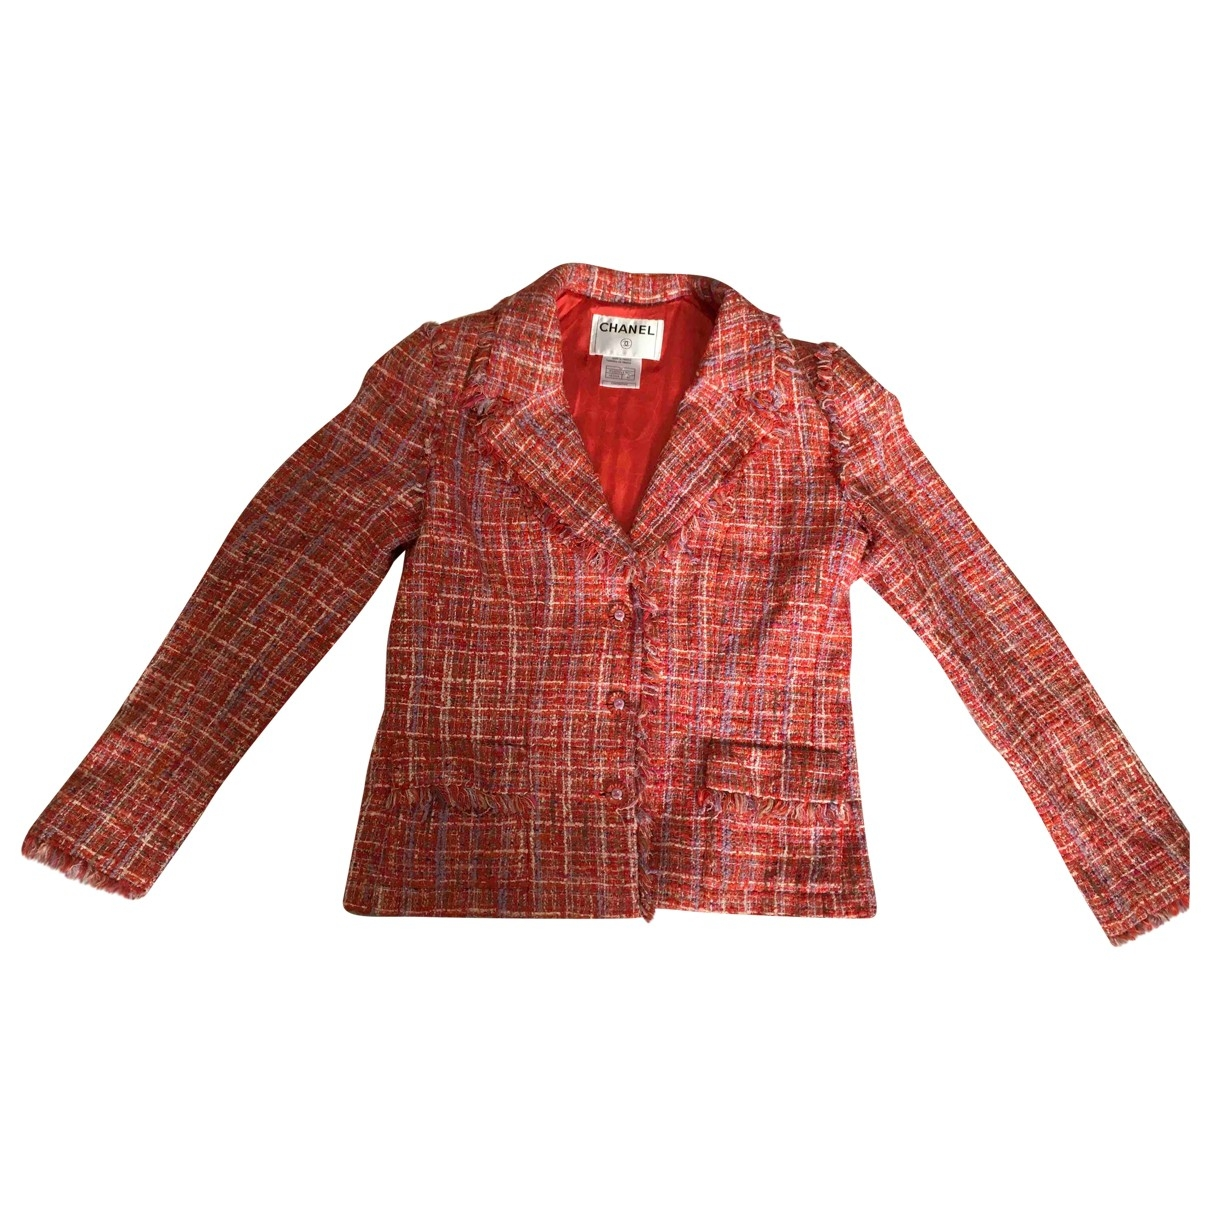 Chanel \N Multicolour Cotton jacket for Women 42 FR